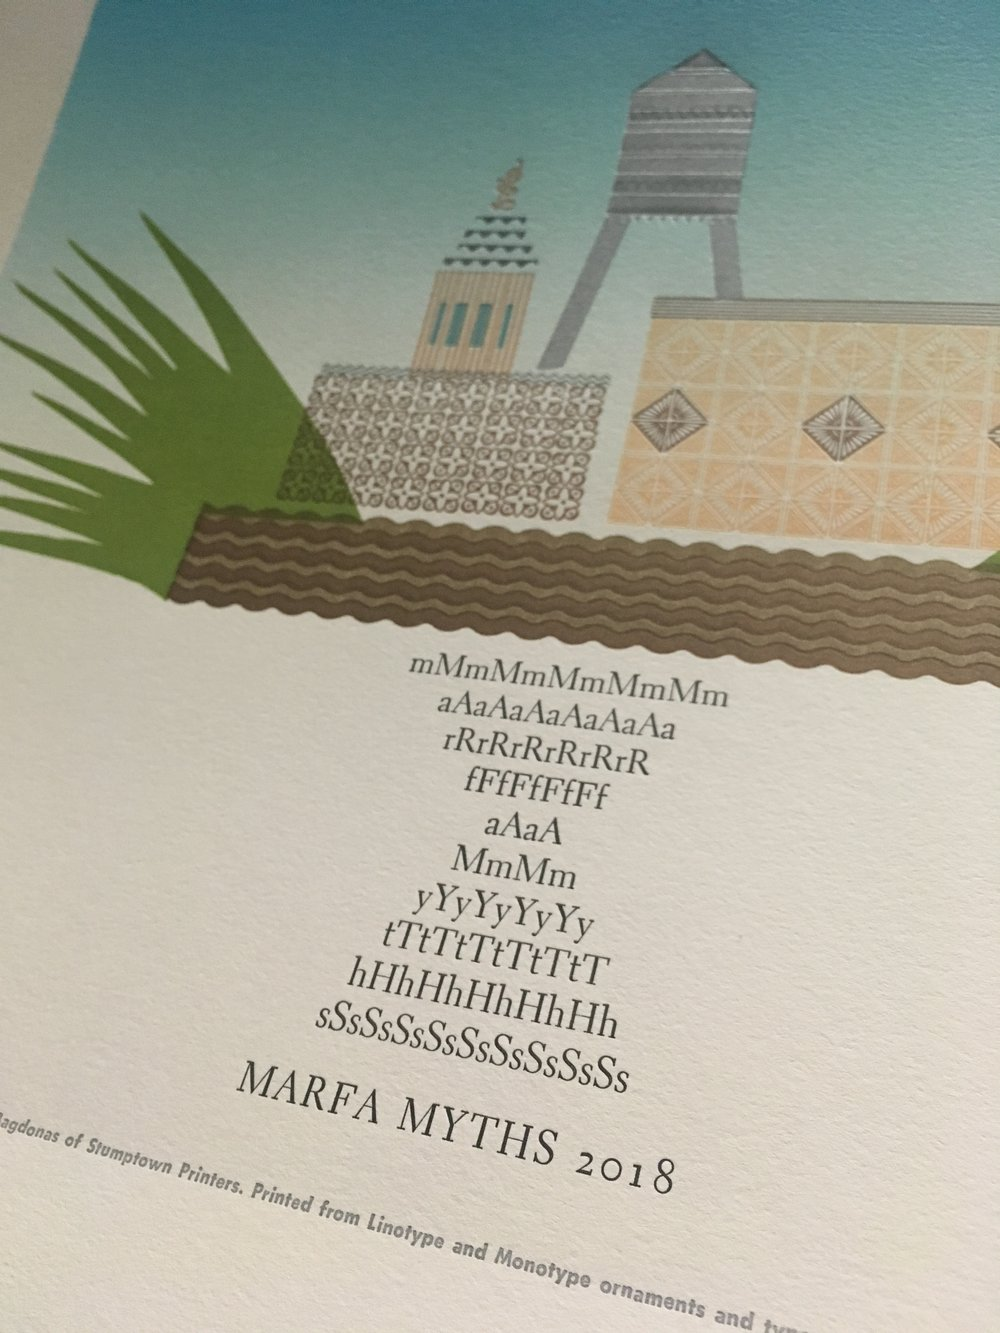 Marfa Myths Limited Edition Print 1.JPG